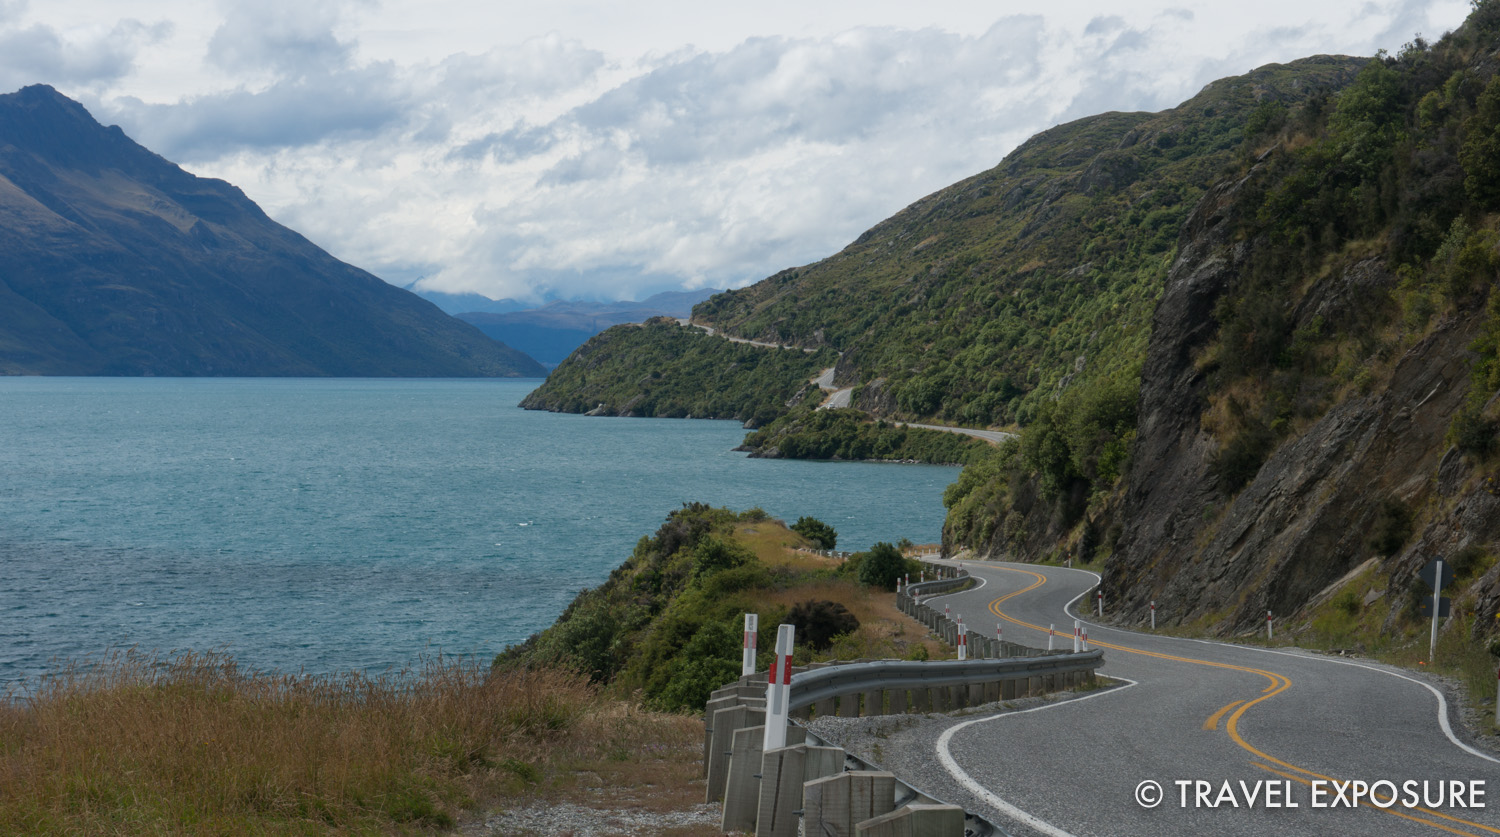 Roadside scenery on the way to Queenstown